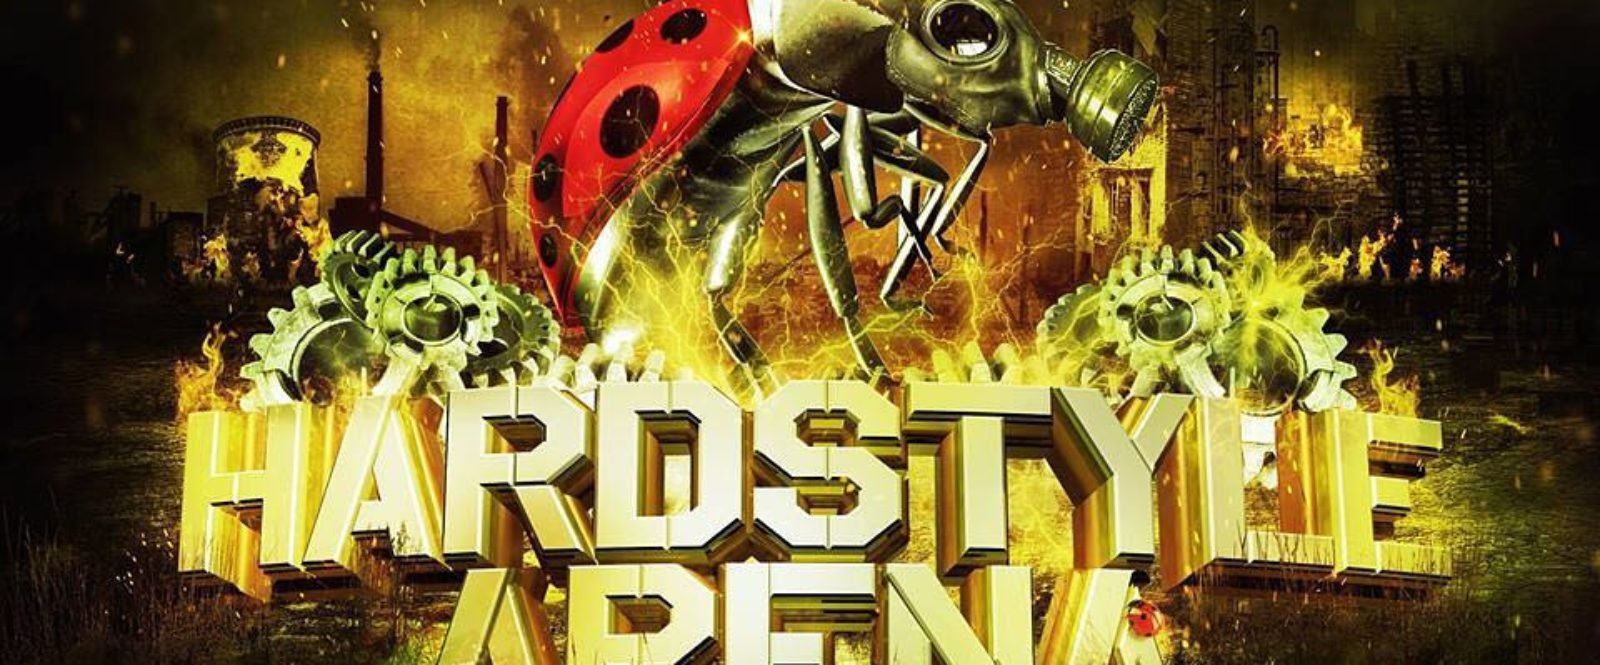 Lets get evil! Evil Activities was just added to rock the HardstyleArena